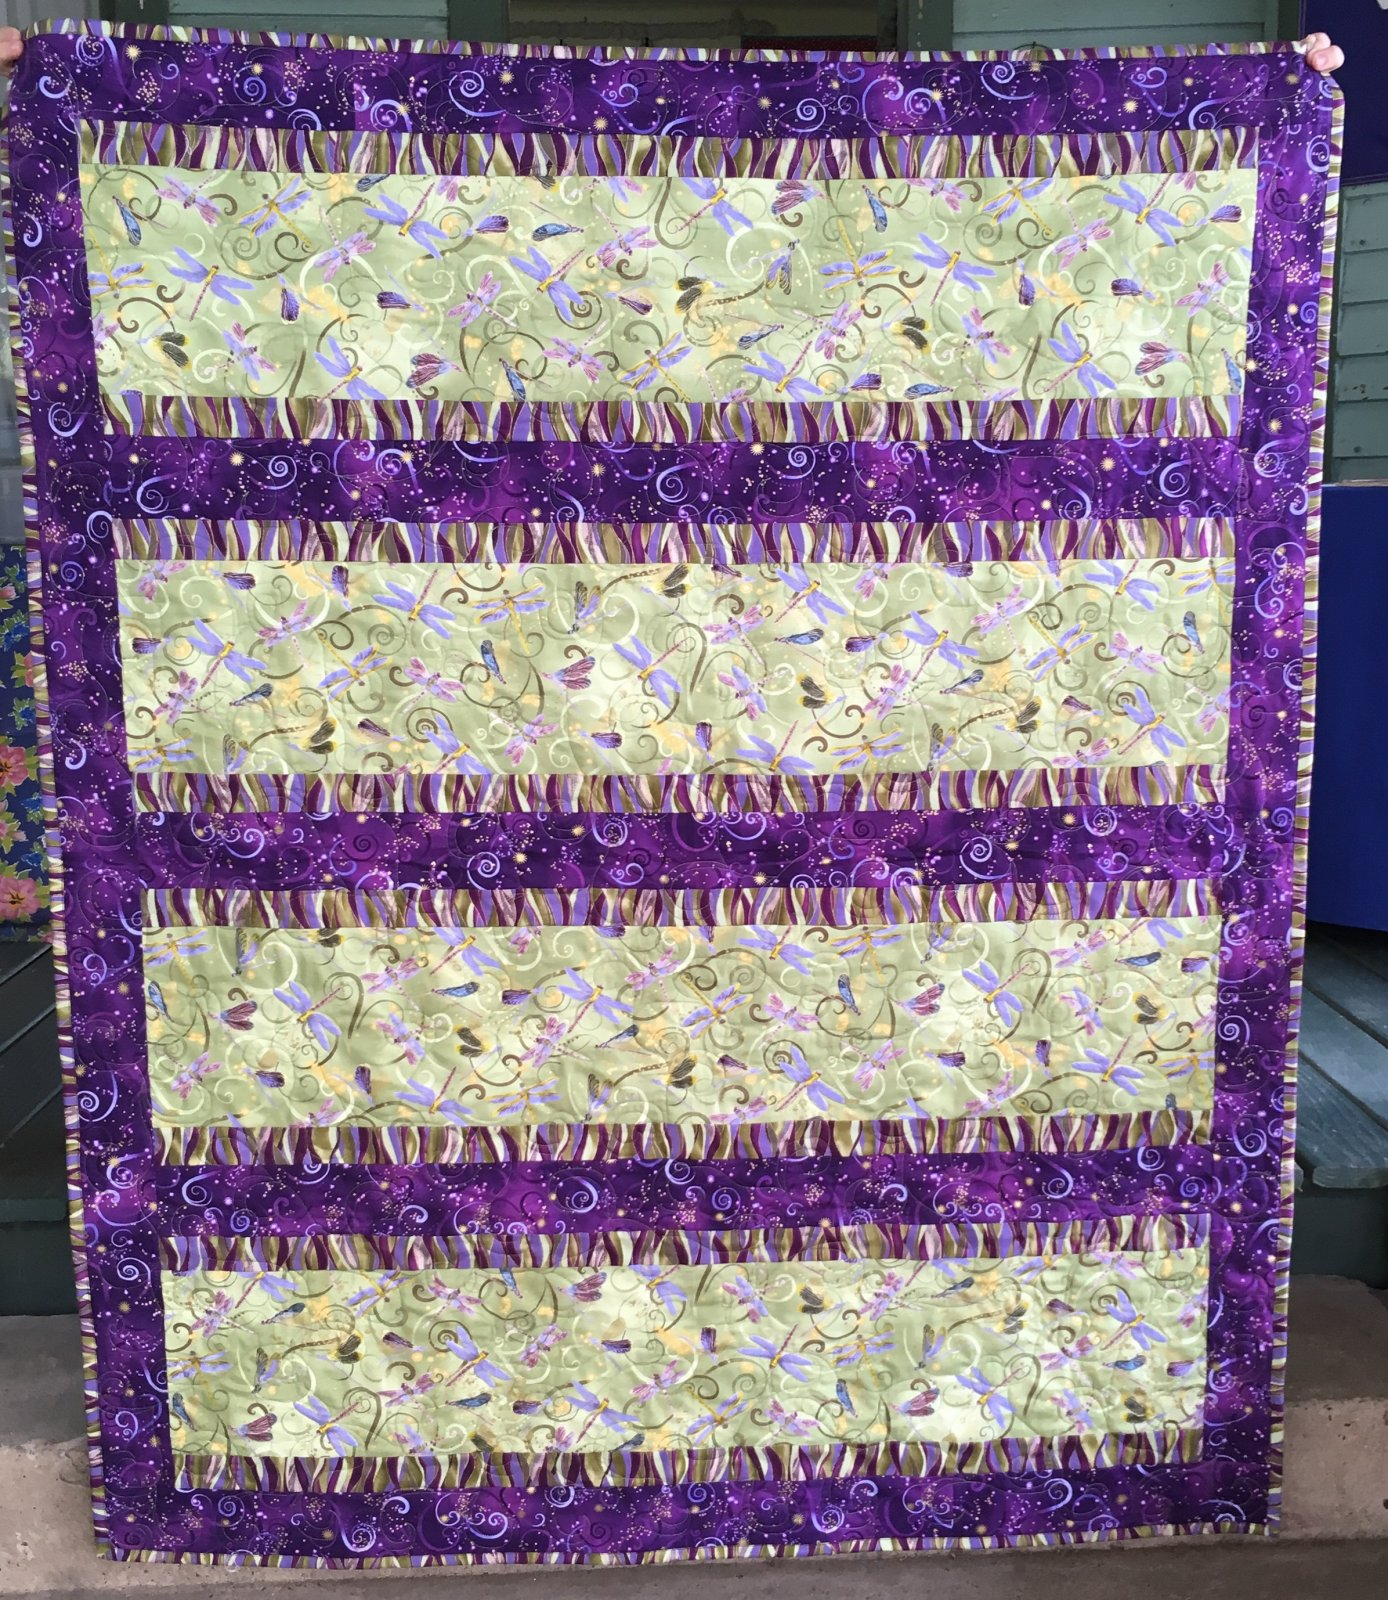 Radiance Dragonfly Quilt 48 x 58